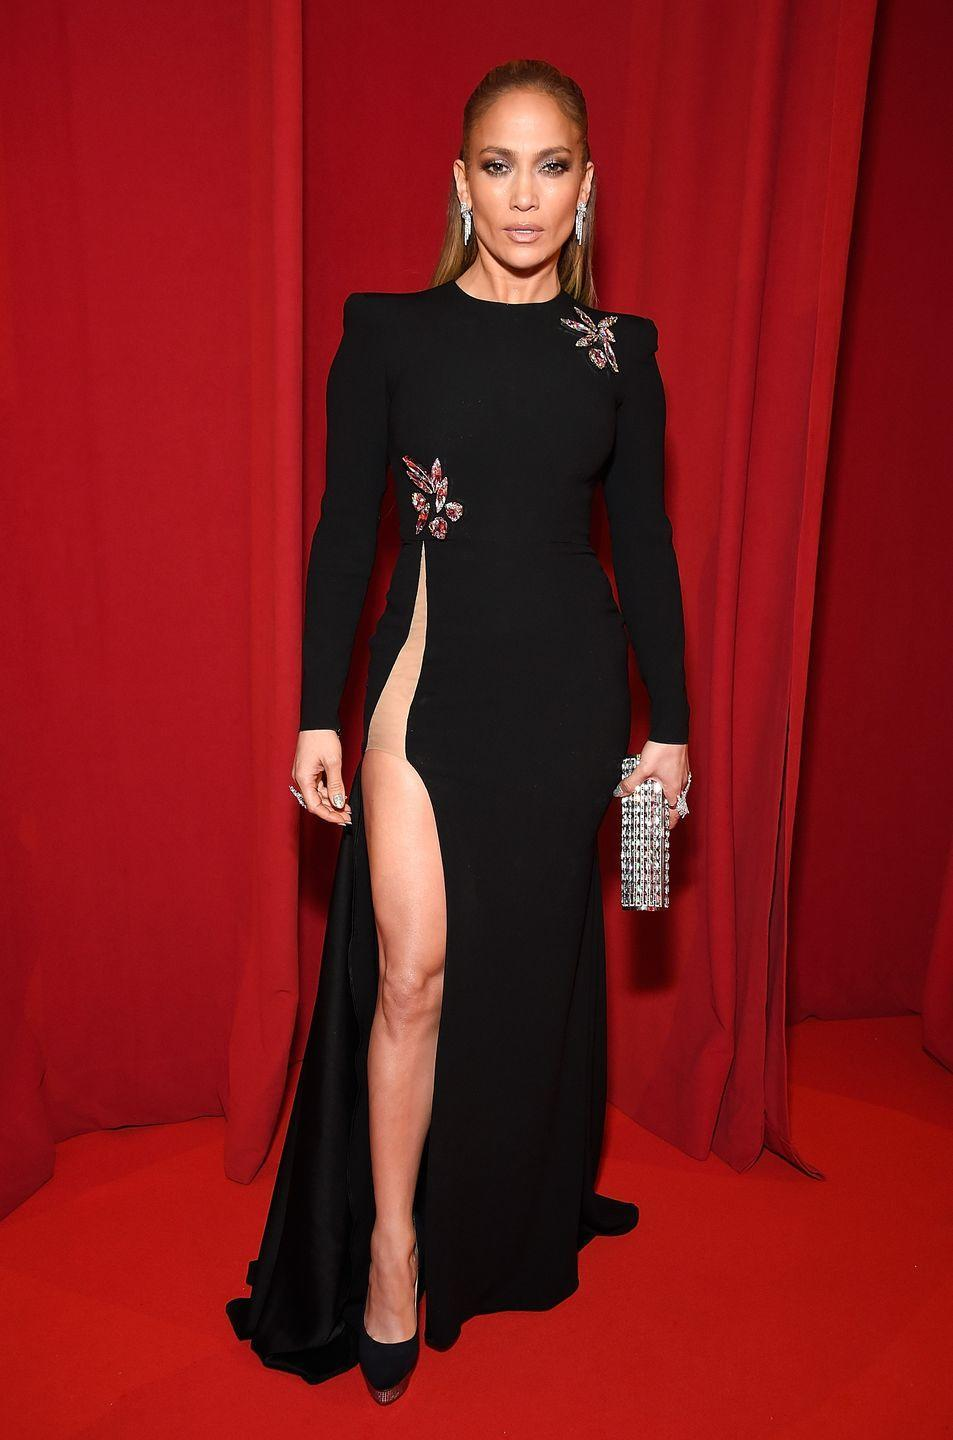 <p>Jennifer Lopez makes a statement in an embellished long-sleeve dress with a SUPER-high slit at The Robin Hood Foundation's 2018 benefit in New York City.</p>